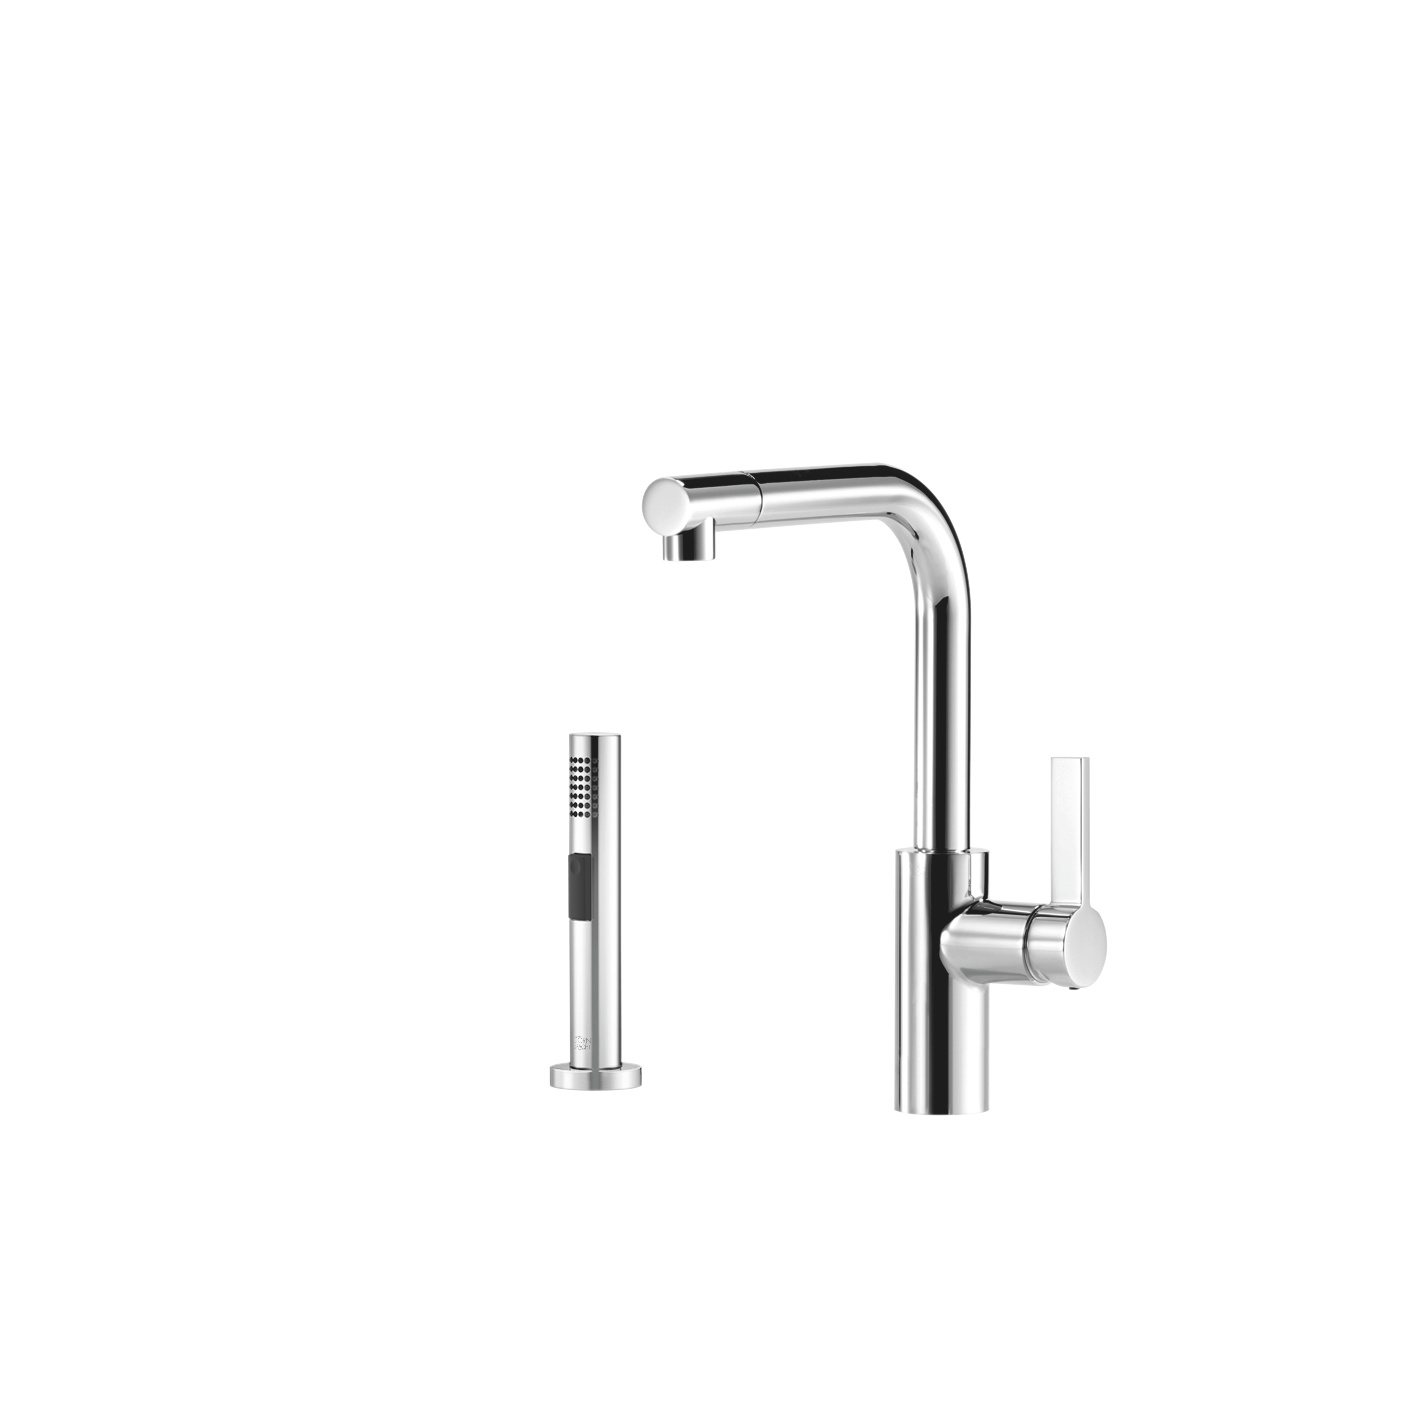 Single-lever mixer with side spray set - polished chrome - 33 826 790-00 0010 + 27 721 970-00